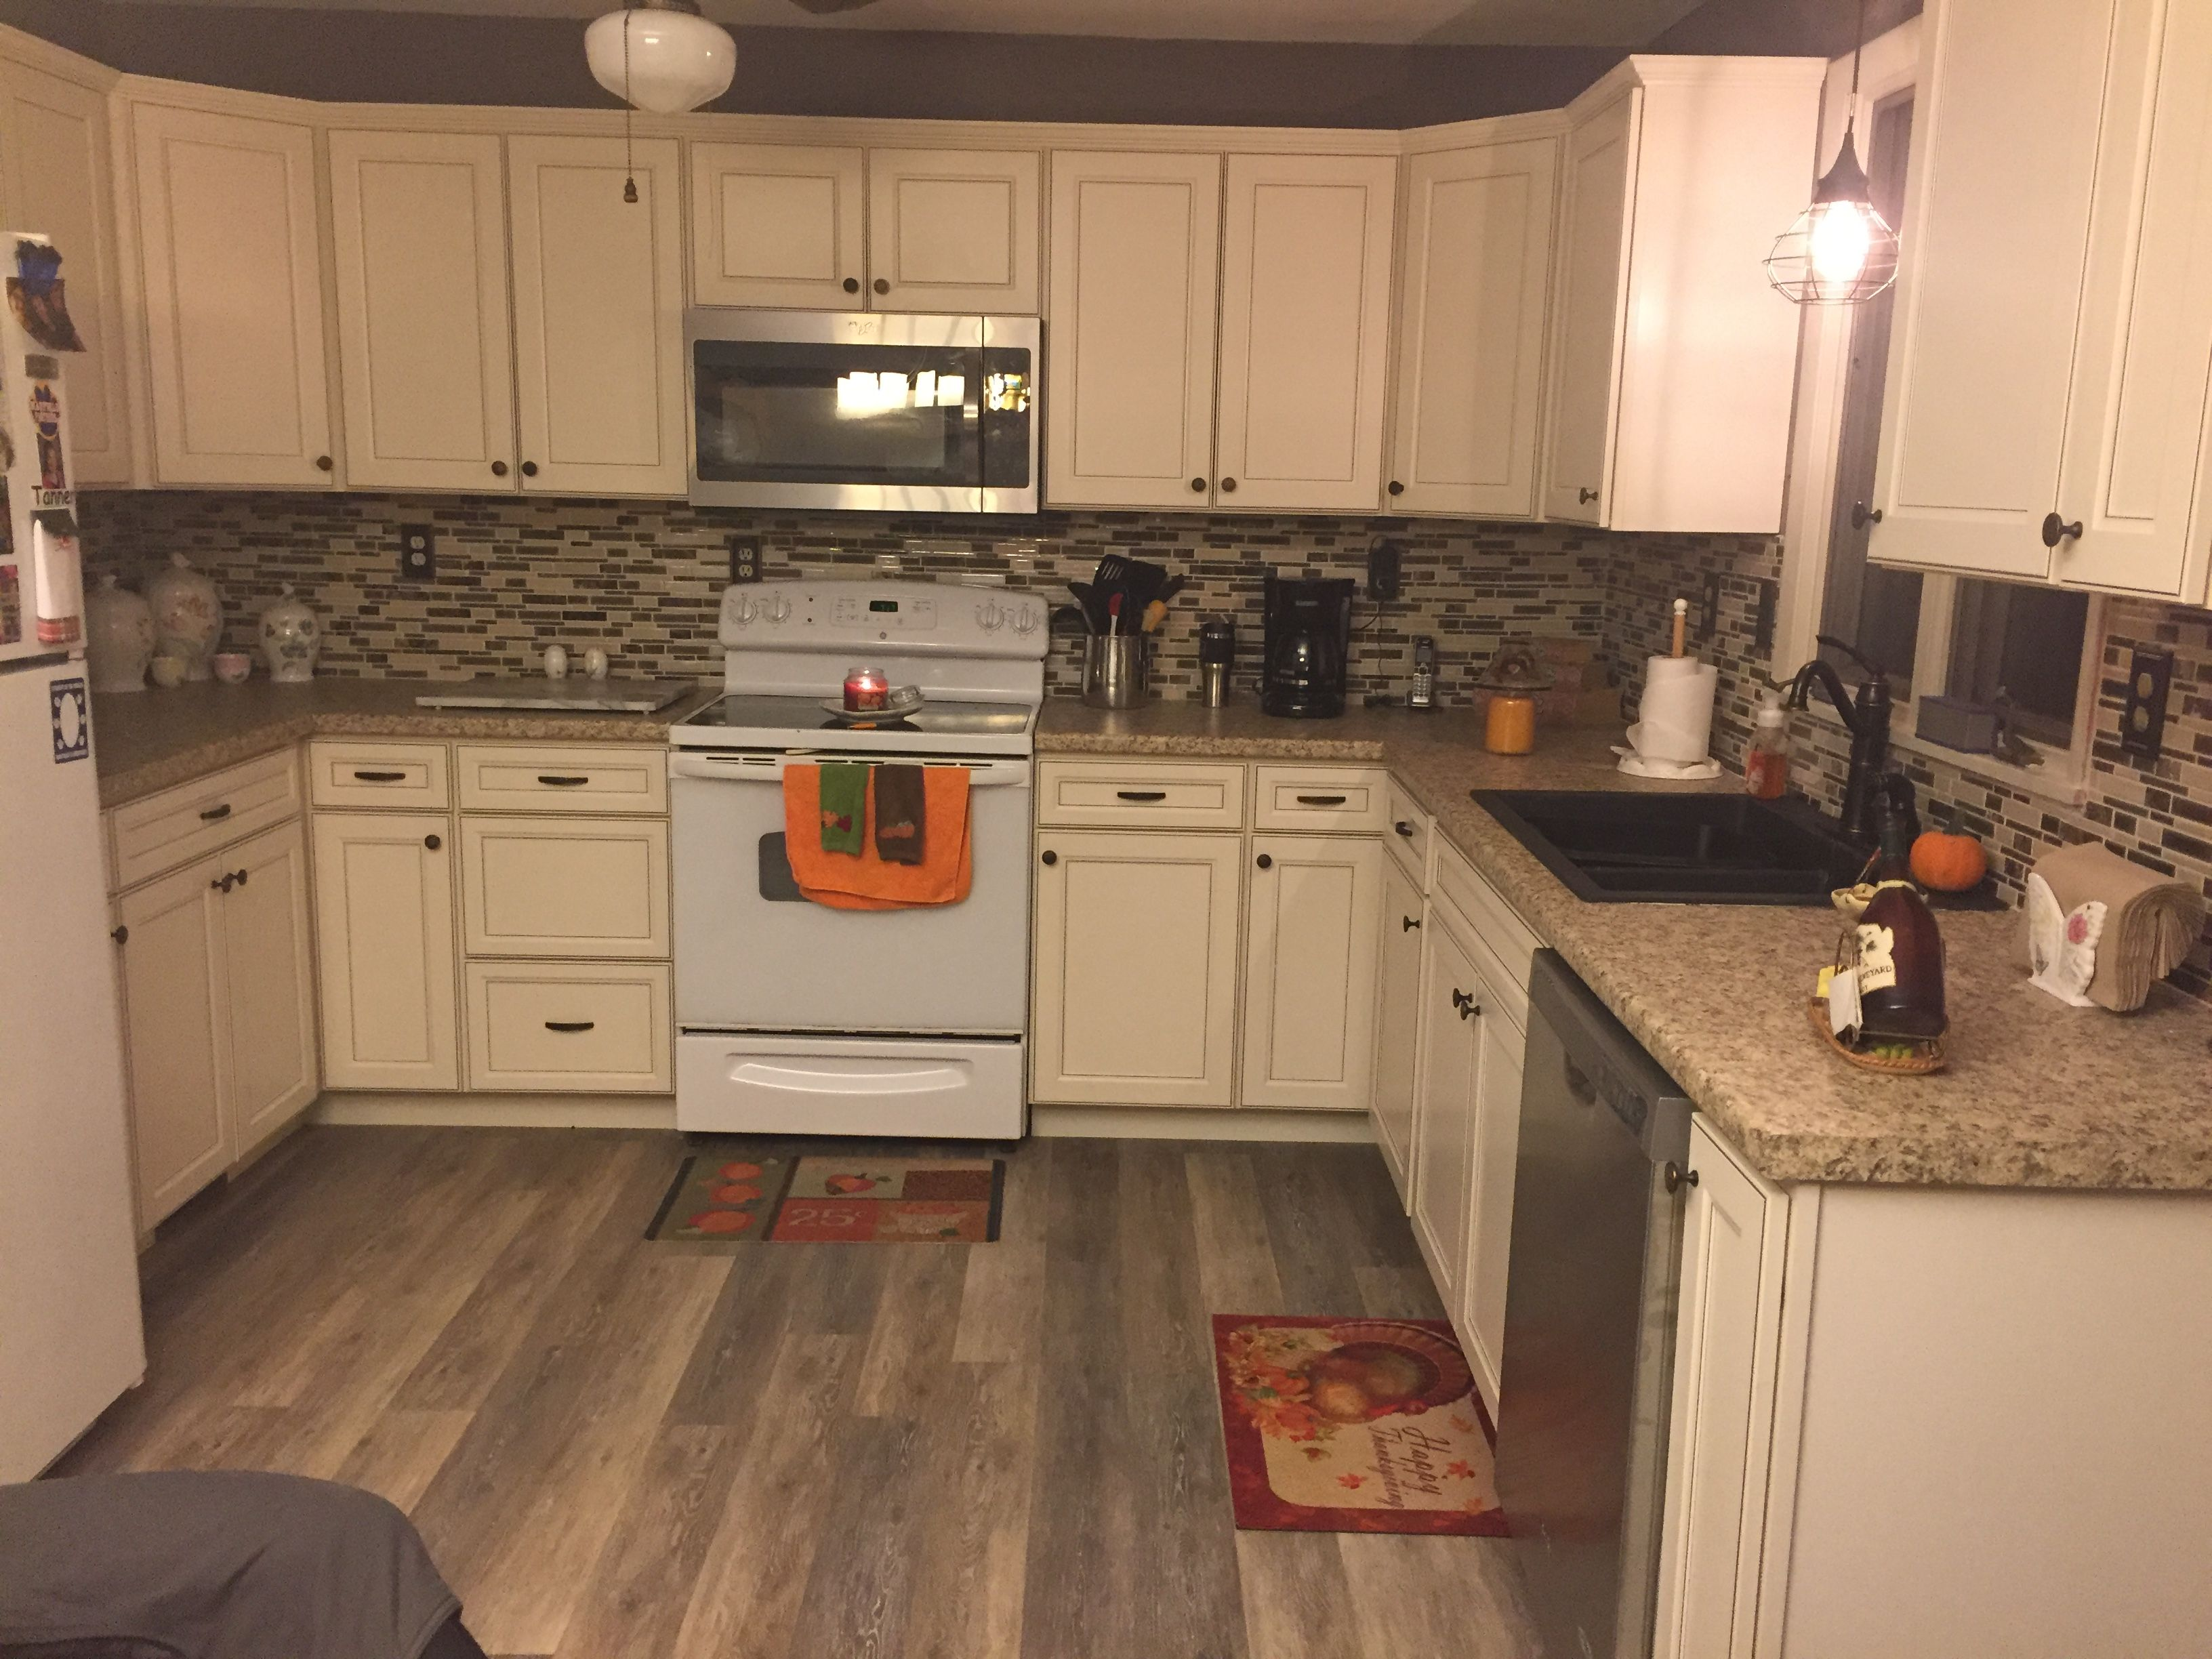 Lowes Caspian Off White Cabinets Refacing Kitchen